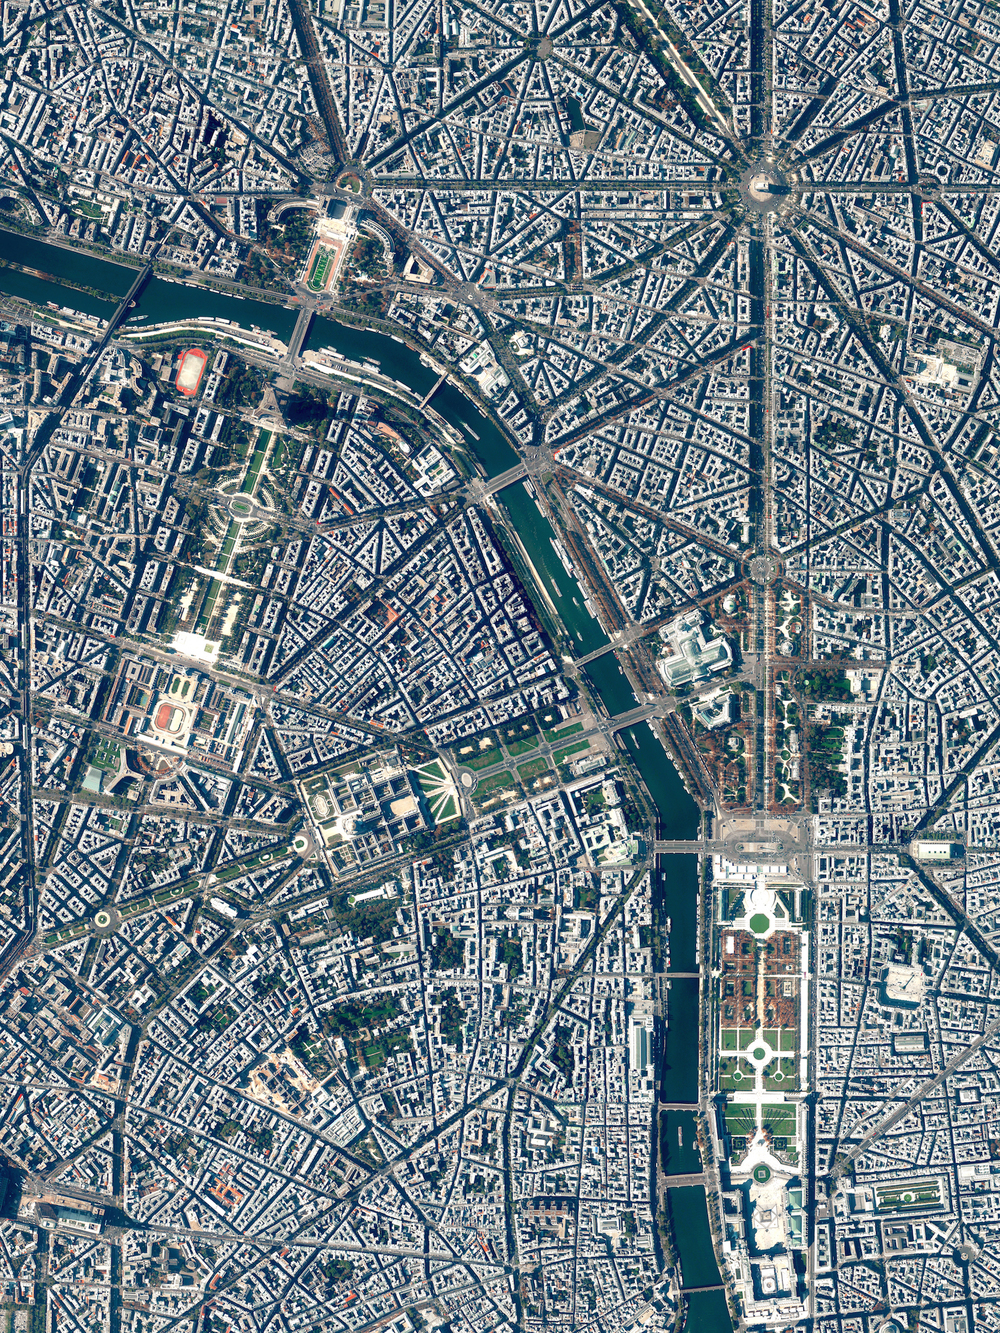 3/6/2016   Paris   Paris, France  48.865797°, 2.330882°     The street plan and distinctive appearance of central Paris, France is largely due to the vast public works program commissioned by Emperor Napoléon III and directed by Georges-Eugène Haussmann, between 1853 and 1870. Haussmann's renovation of Paris included the demolition of crowded and unhealthy medieval neighborhoods and the building of broad, diagonal avenues, parks, squares, sewers, fountains, and aqueducts.